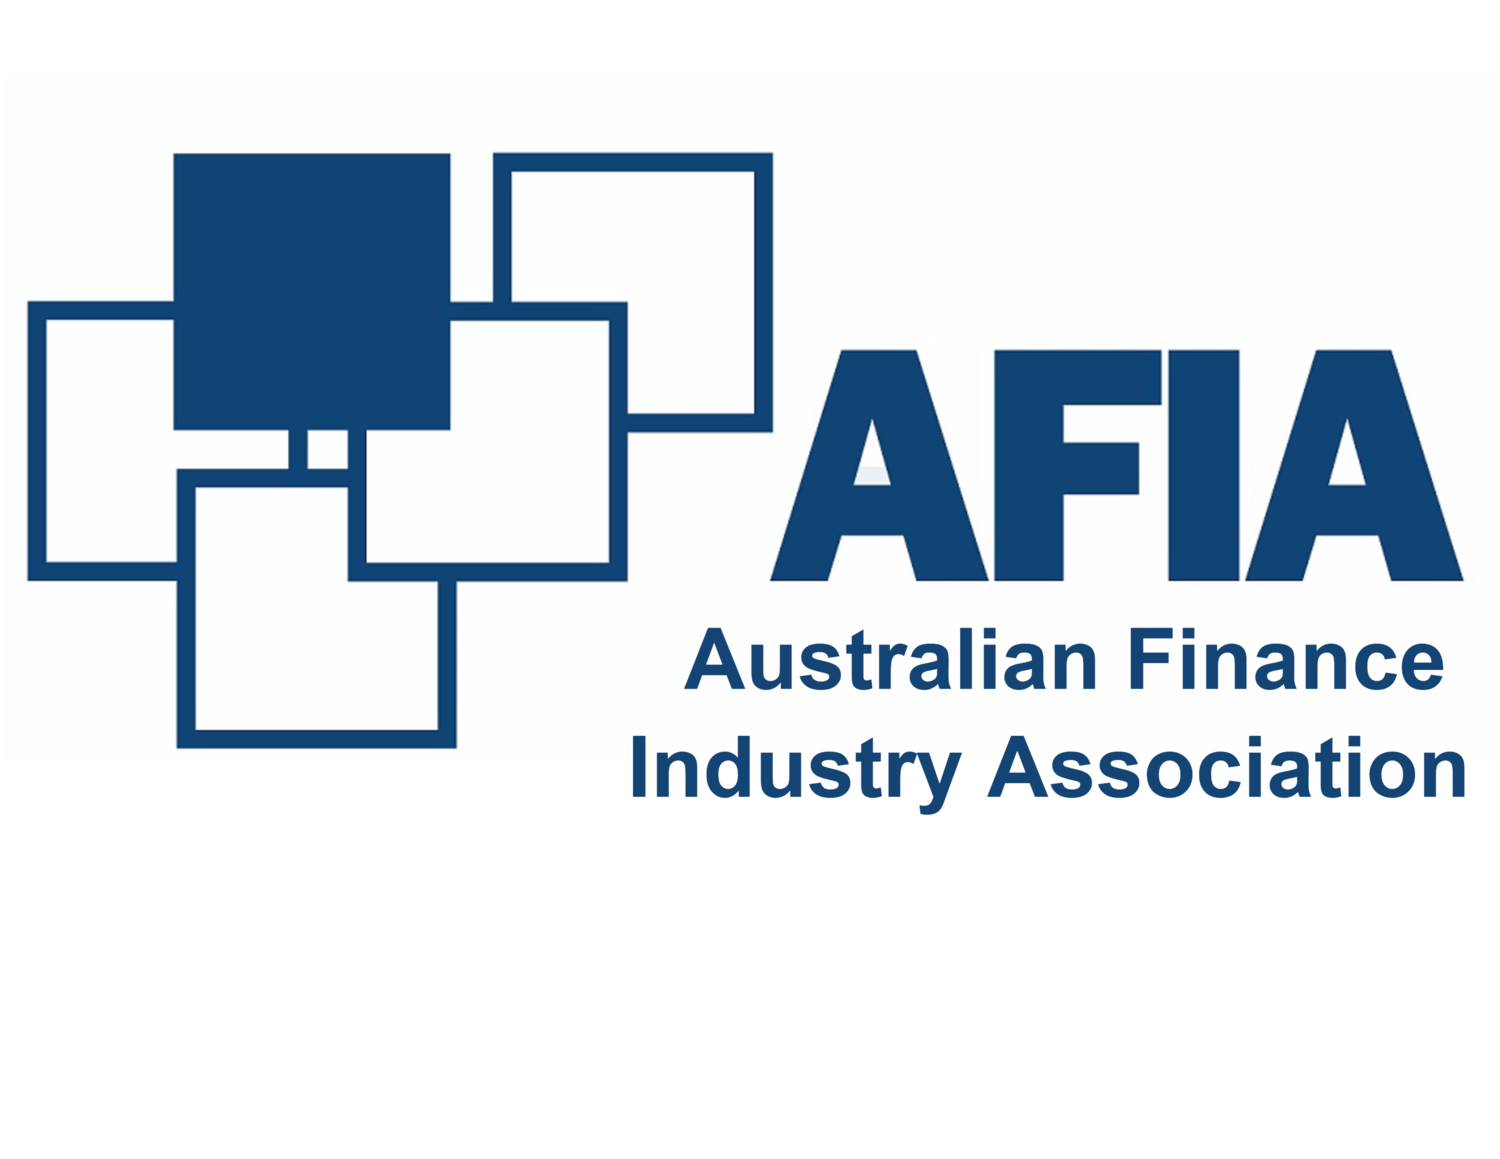 The Australian Finance Industry Association